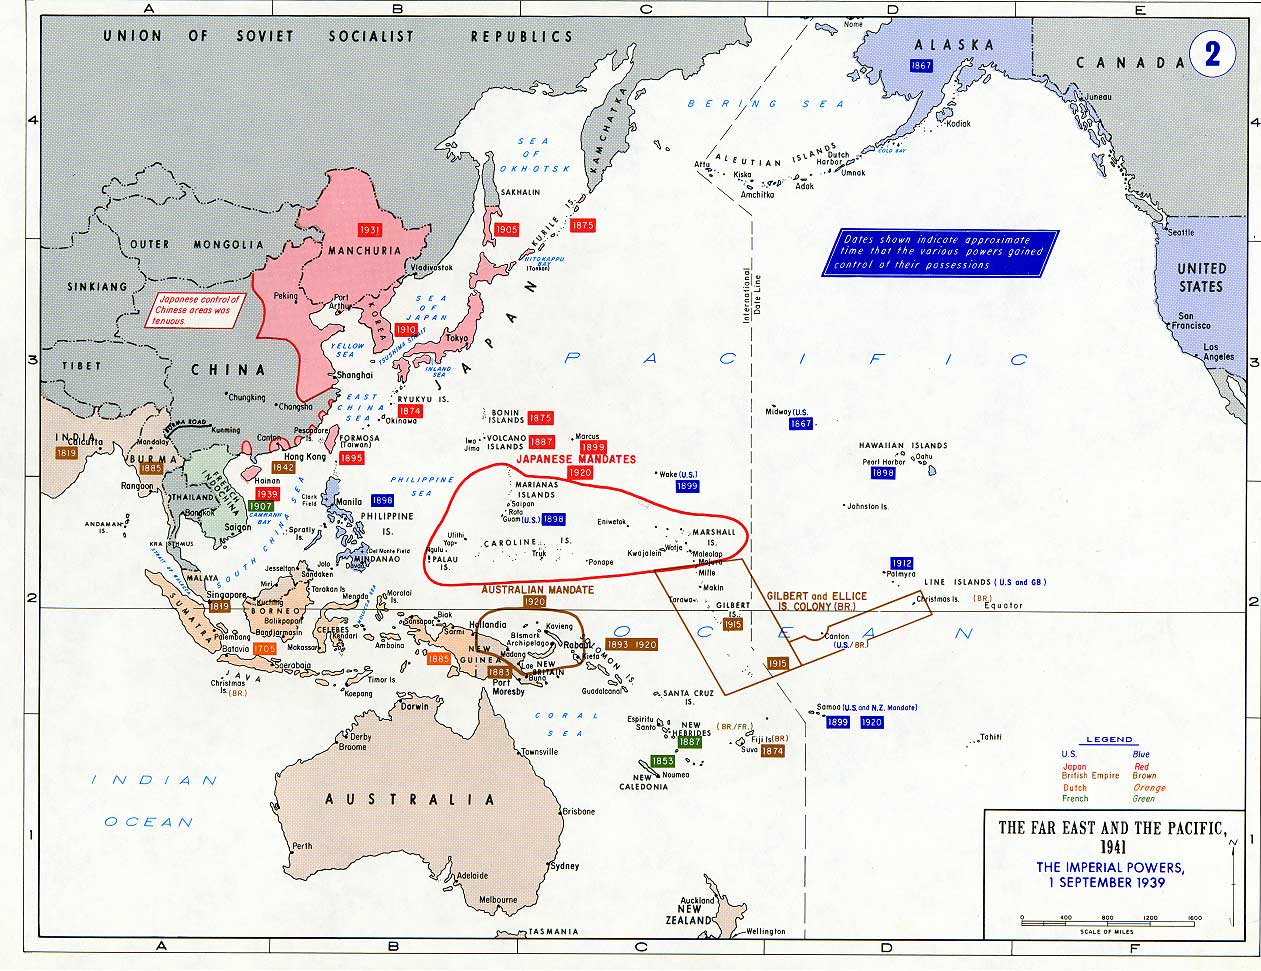 Pacific War - The Imperial Powers 1939 - Full size